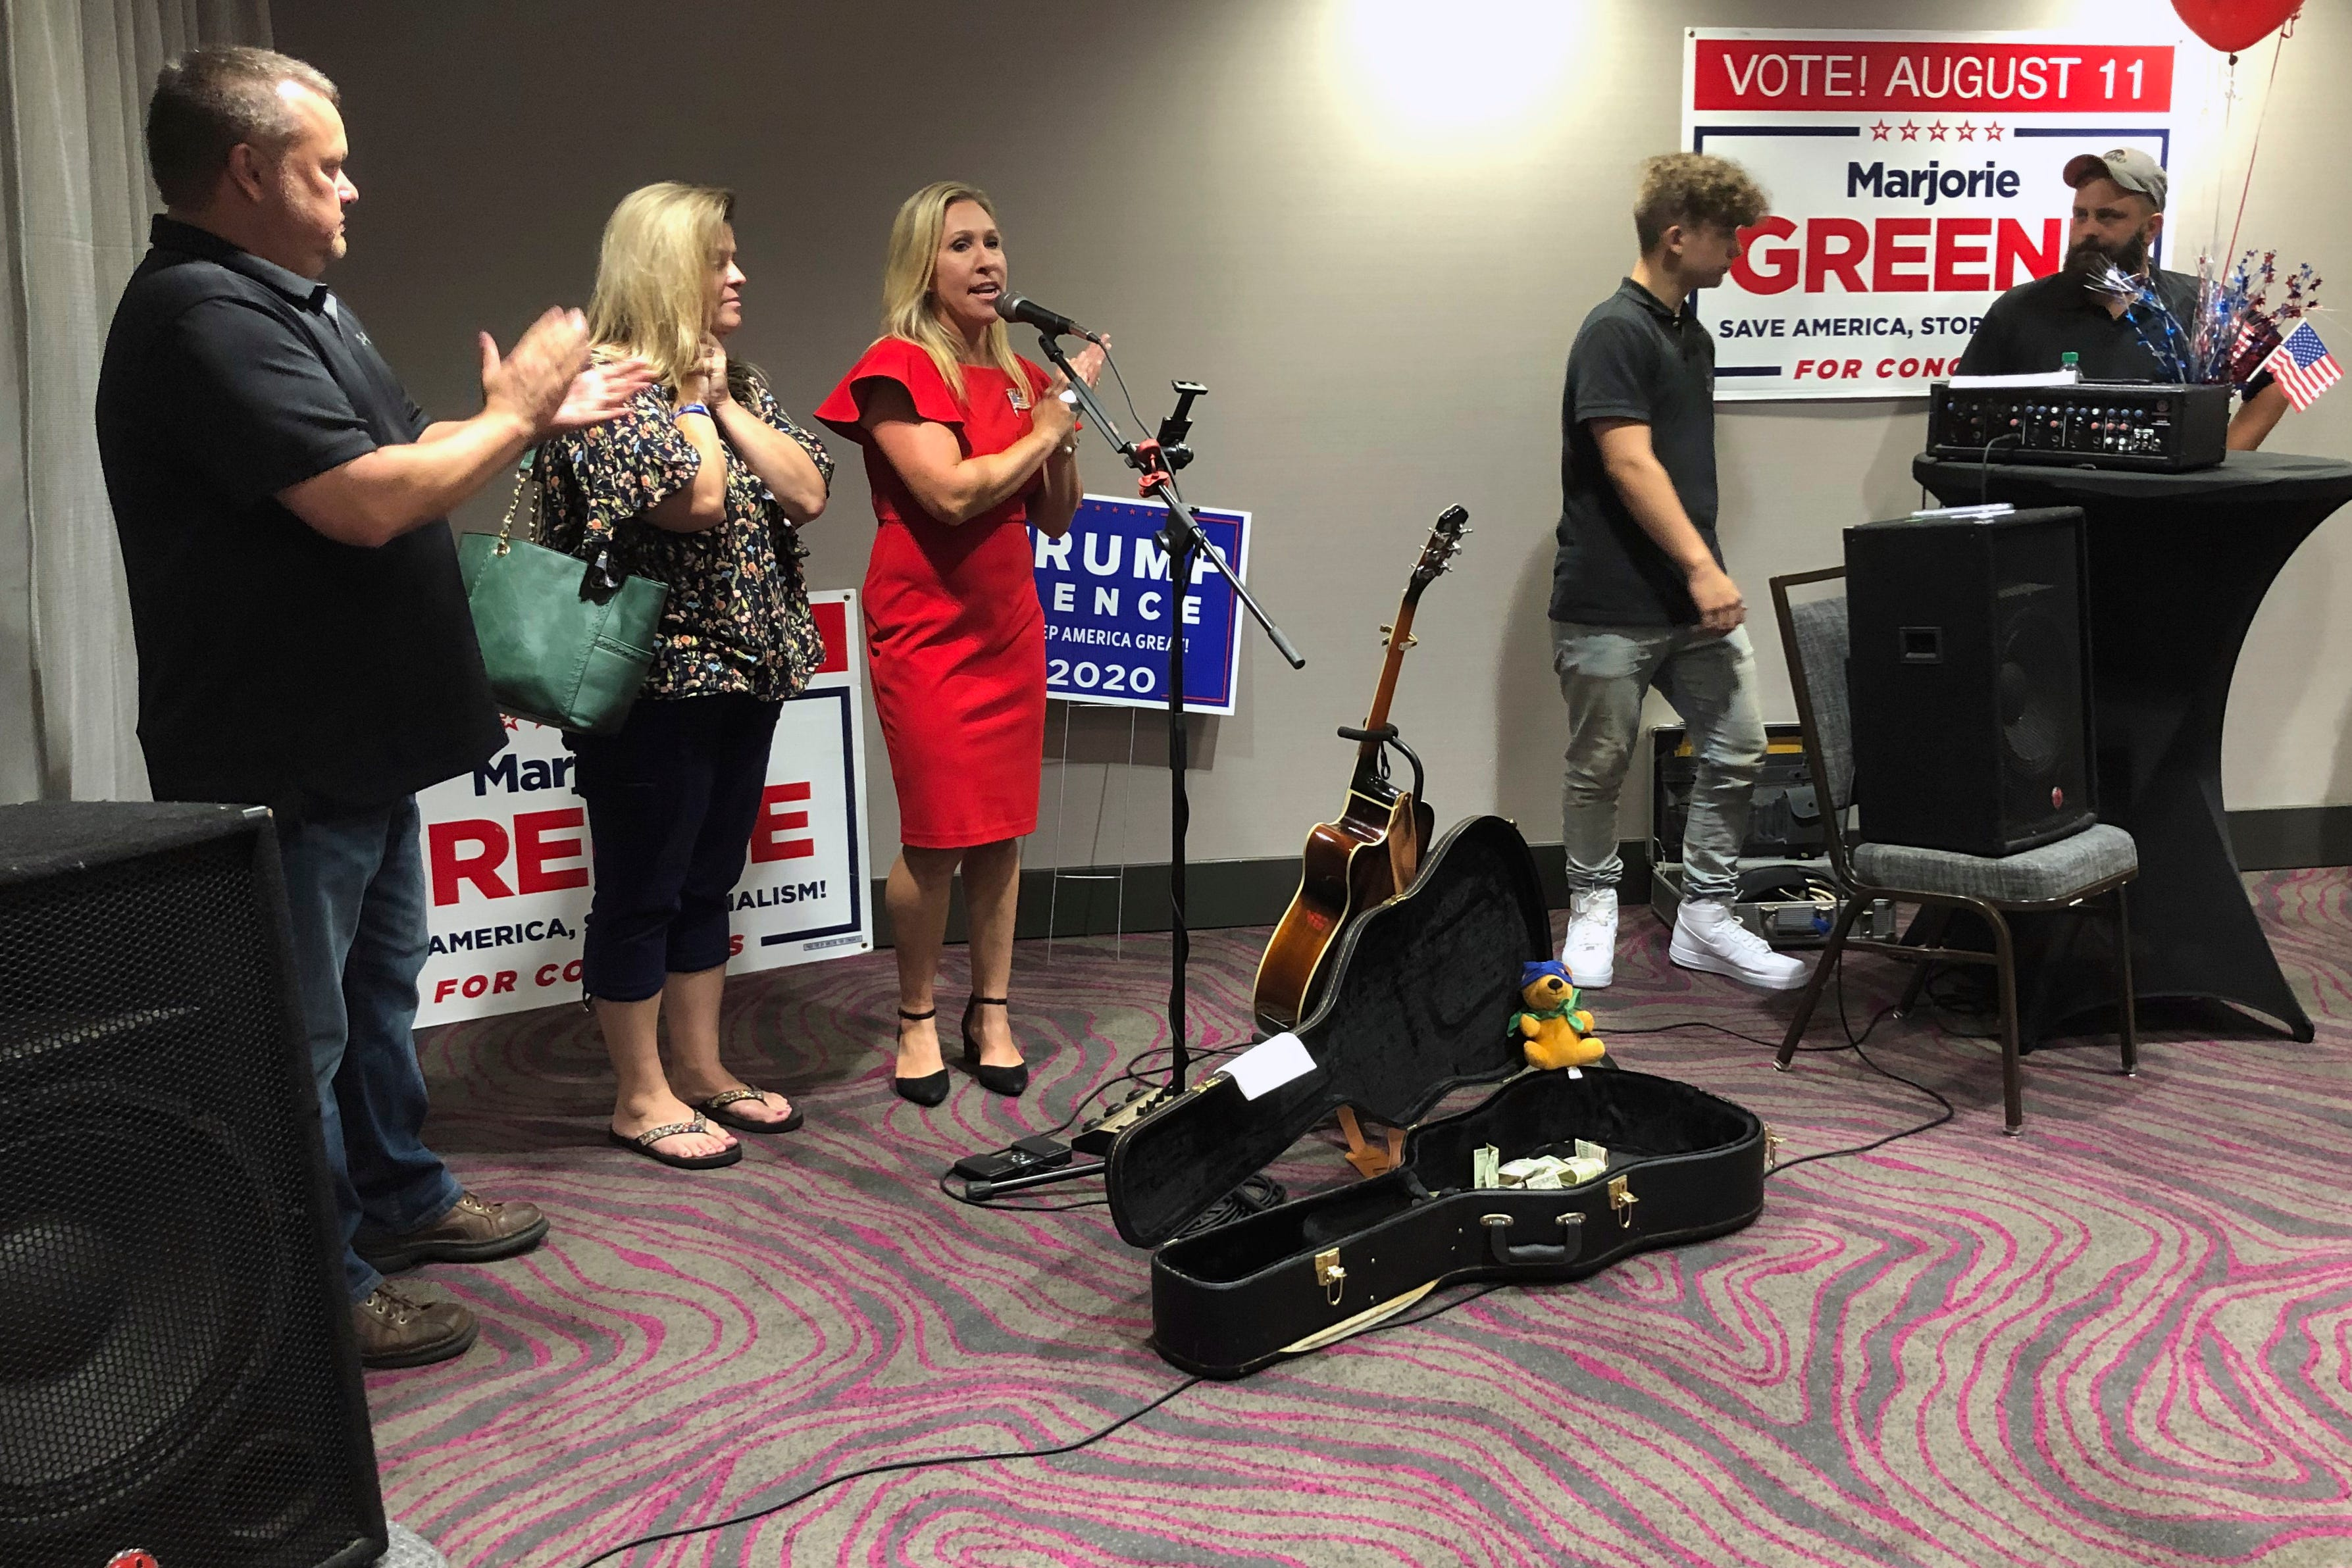 Marjorie Taylor Greene, third from left, claps with her supporters at a watch party event, on Tuesday, Aug. 11, 2020, in Rome, Georgia, where she won the GOP nomination for northwest Georgia's 14th Congressional District. Greene, a construction executive, has been criticized for promoting racist videos and adamantly supporting the far-right QAnon conspiracy theory.